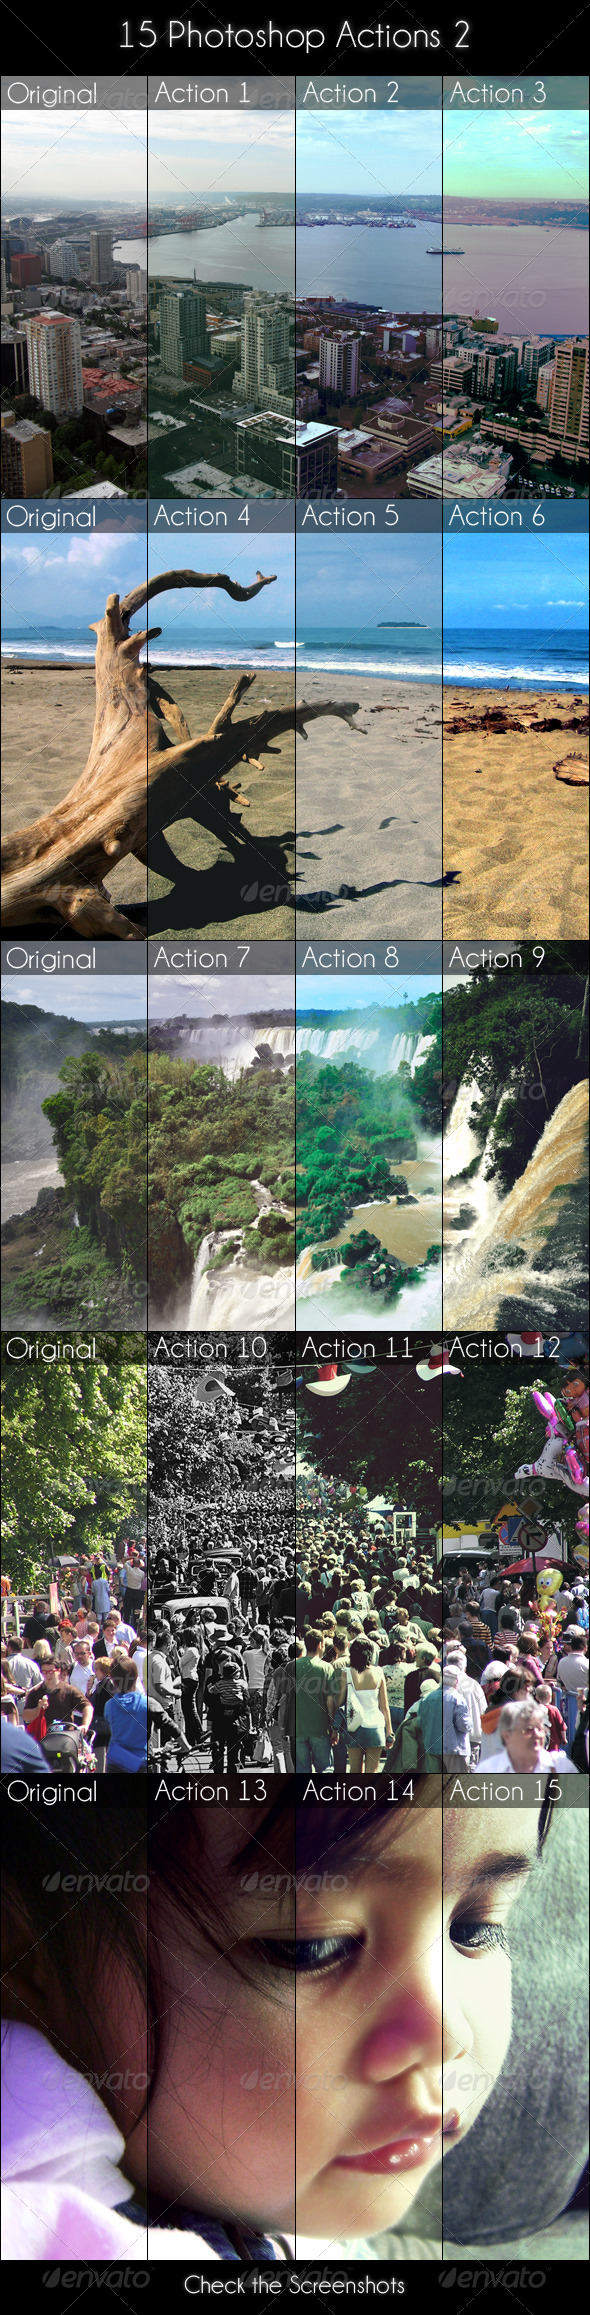 15 Photoshop Actions 2 - Photo Effects Actions